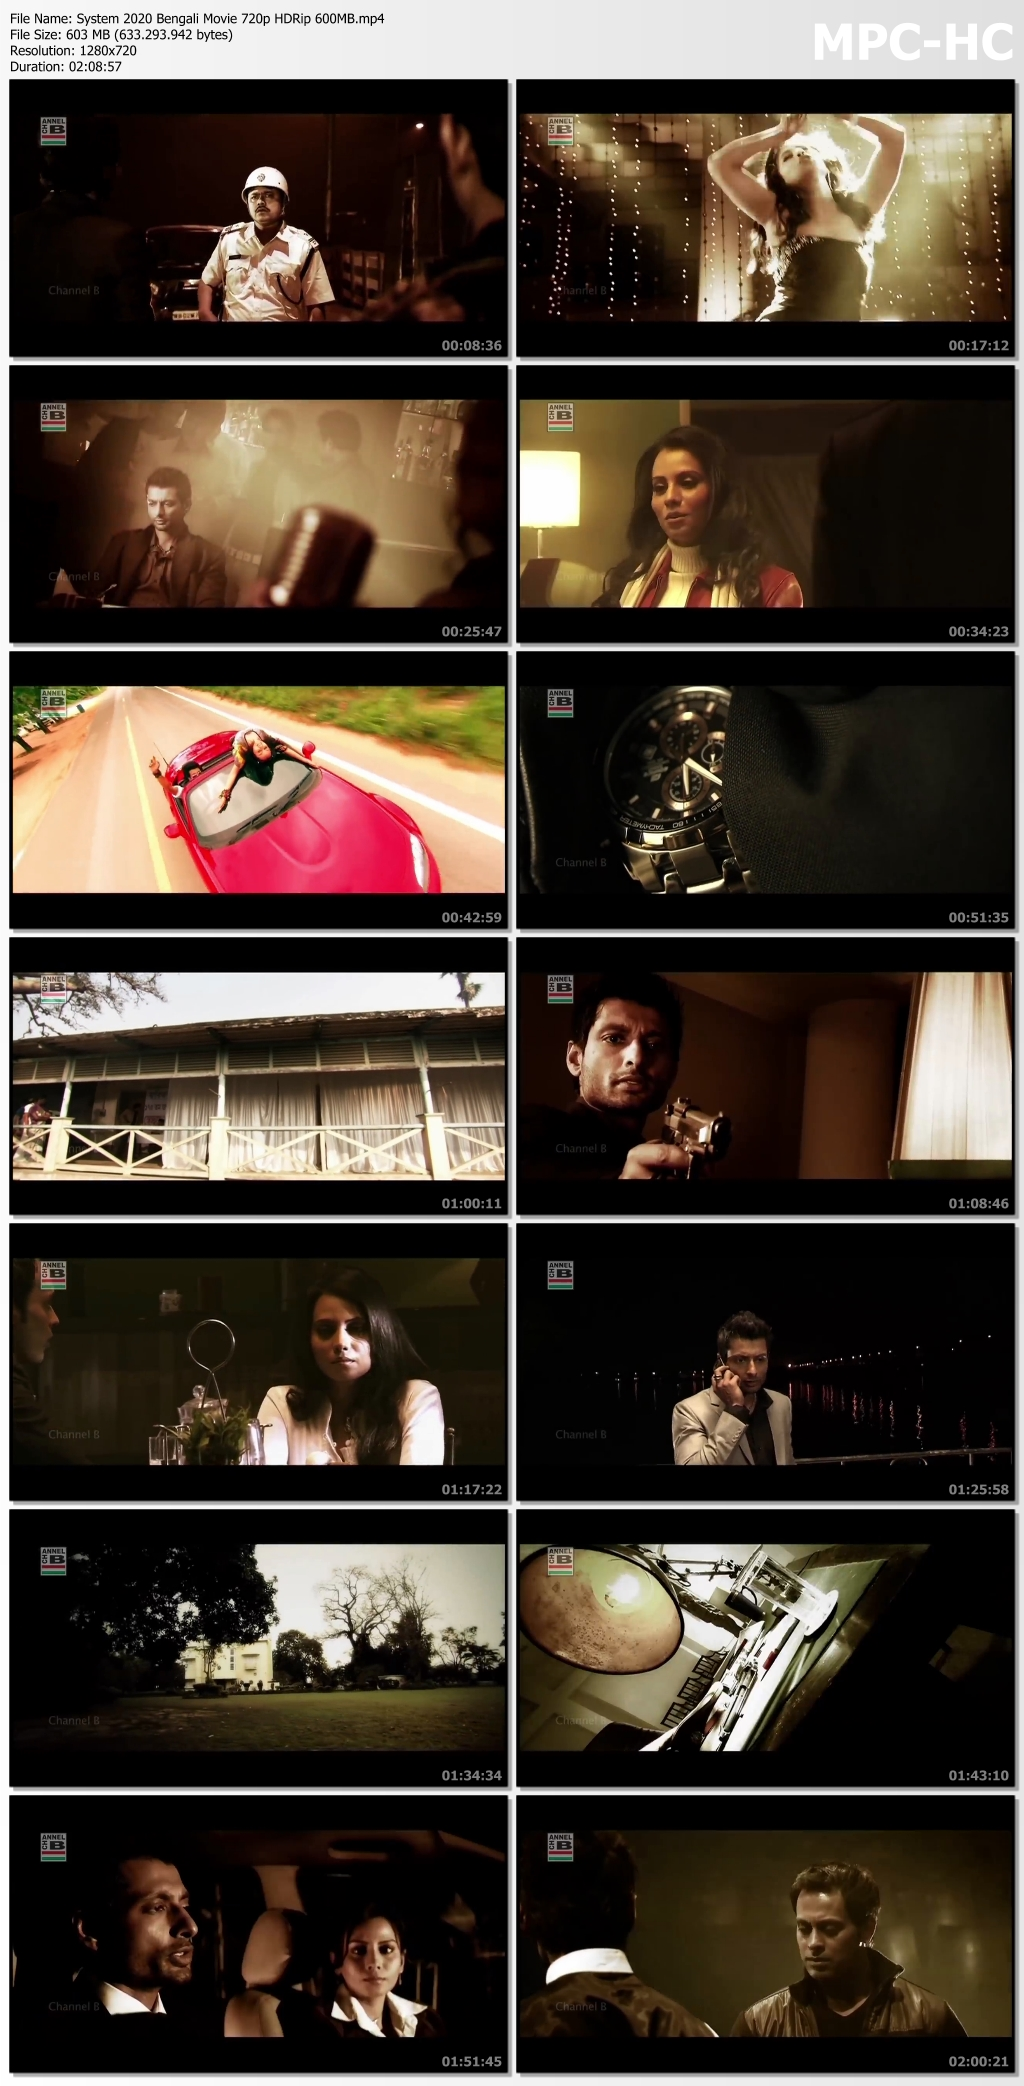 System-2020-Bengali-Movie-720p-HDRip-600-MB-mp4-thumbs